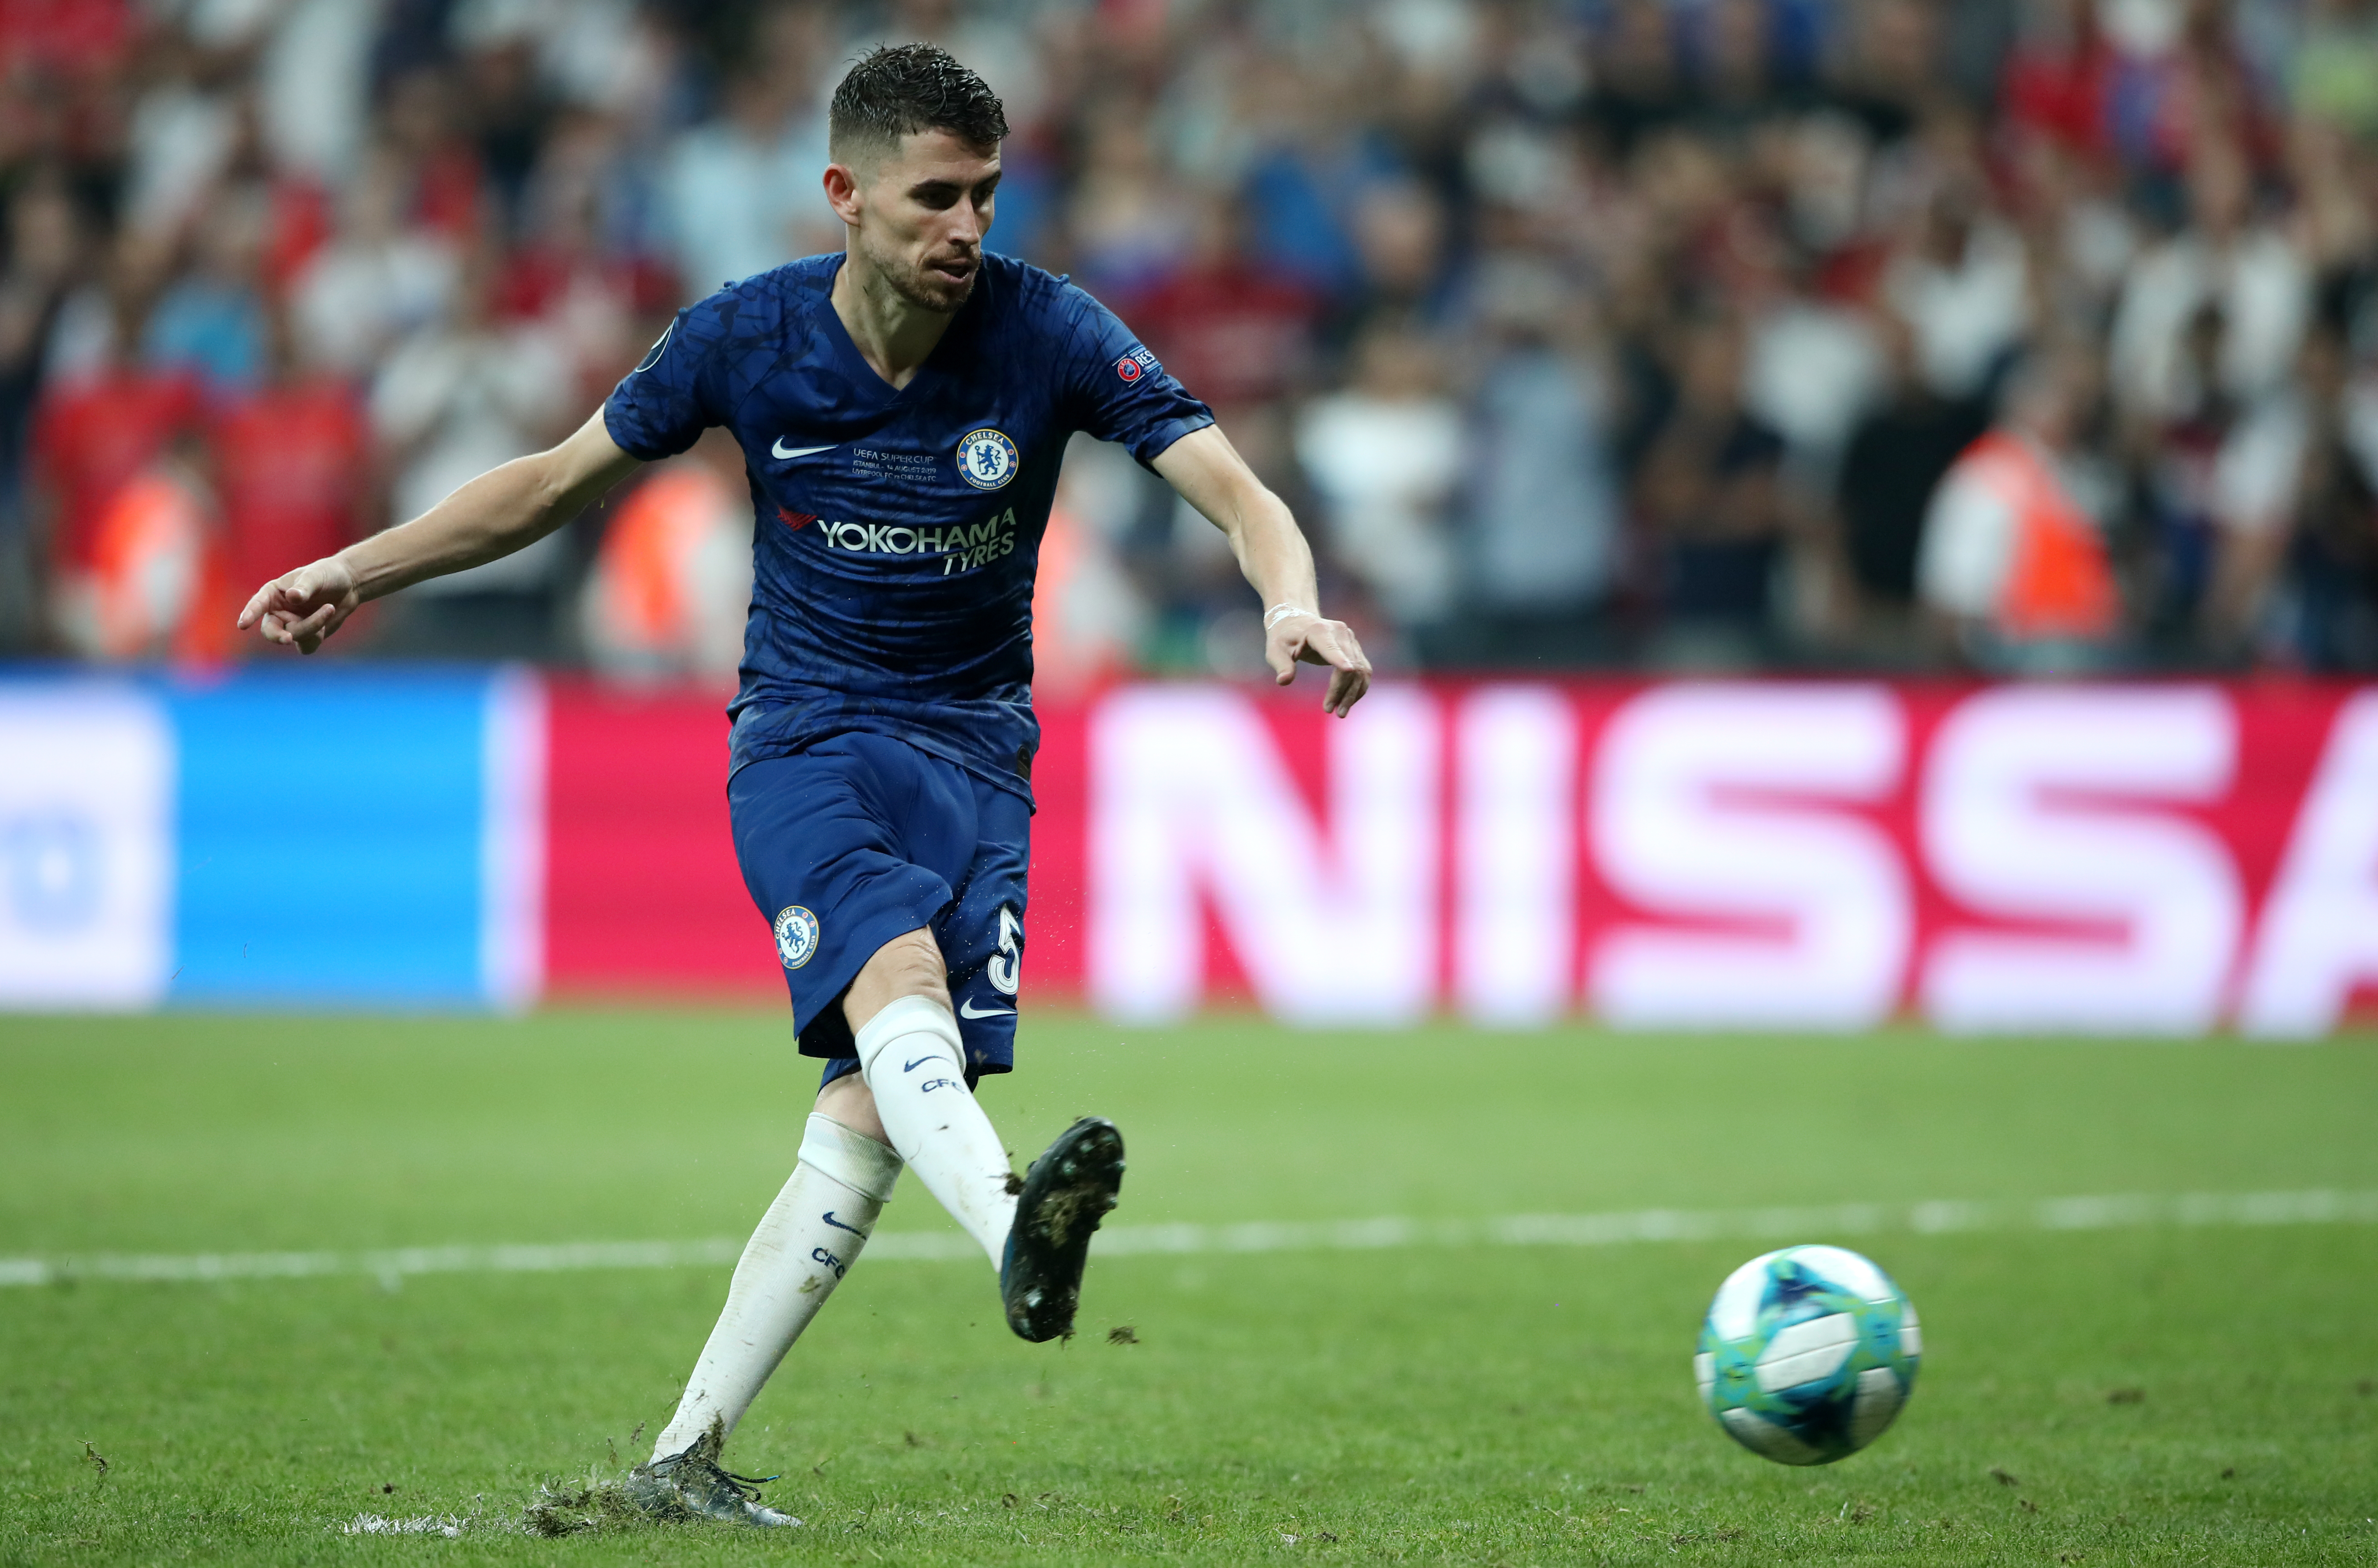 Jorginho scored from the penalty spot to send the game to a shootout